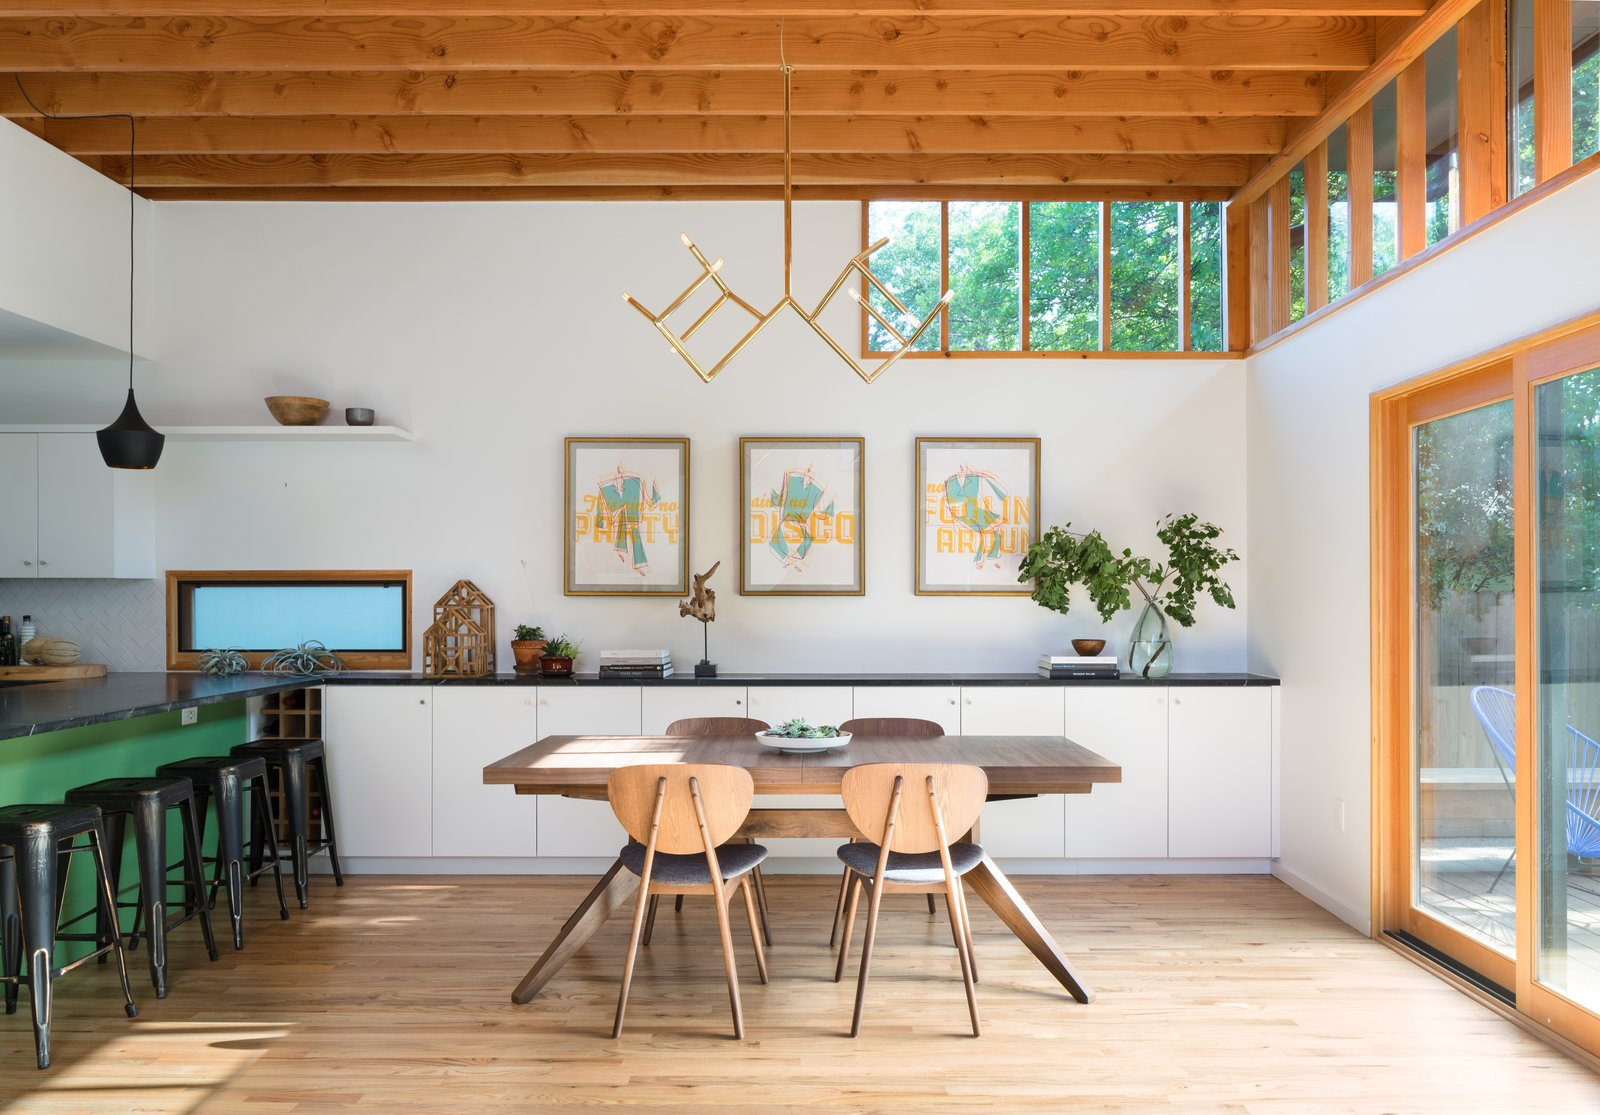 Dining, Pendant, Table, Accent, Storage, Chair, and Medium Hardwood  Best Dining Accent Medium Hardwood Table Pendant Photos from Bringing Light Into a Modest 1940s Bungalow in Austin